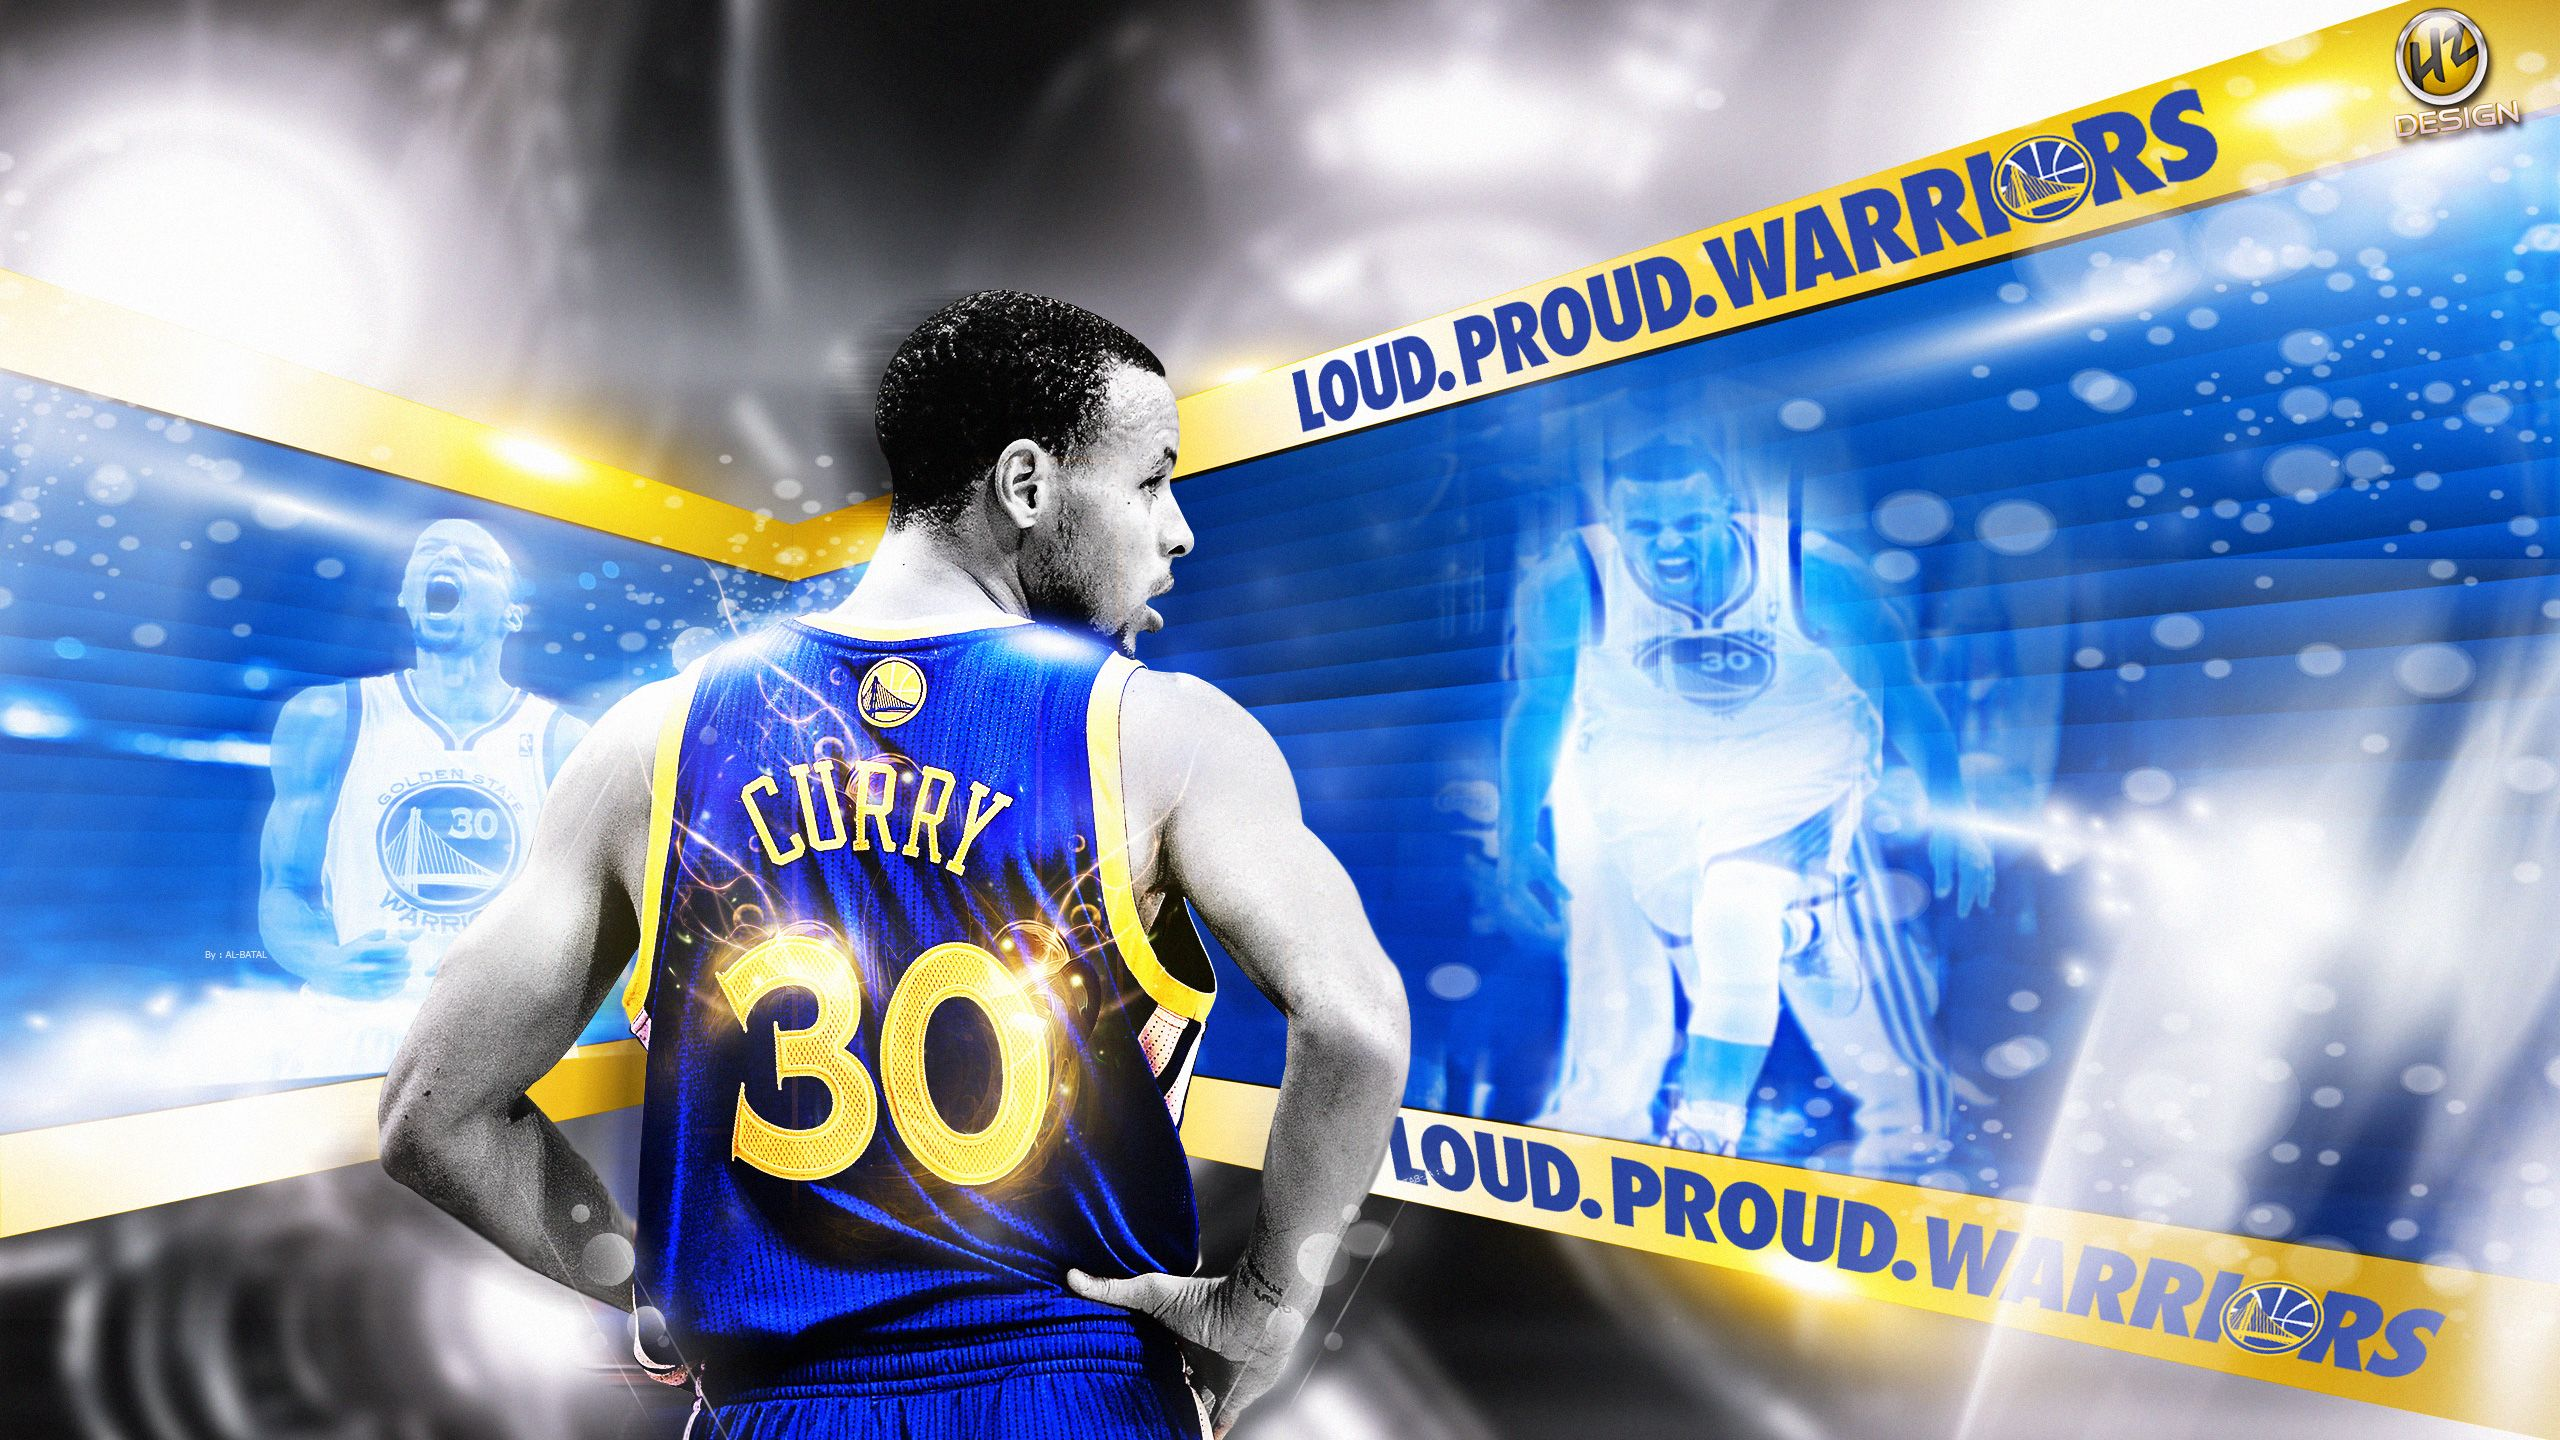 Stephen curry background wallpaper stephen curry - Cool nba background ...